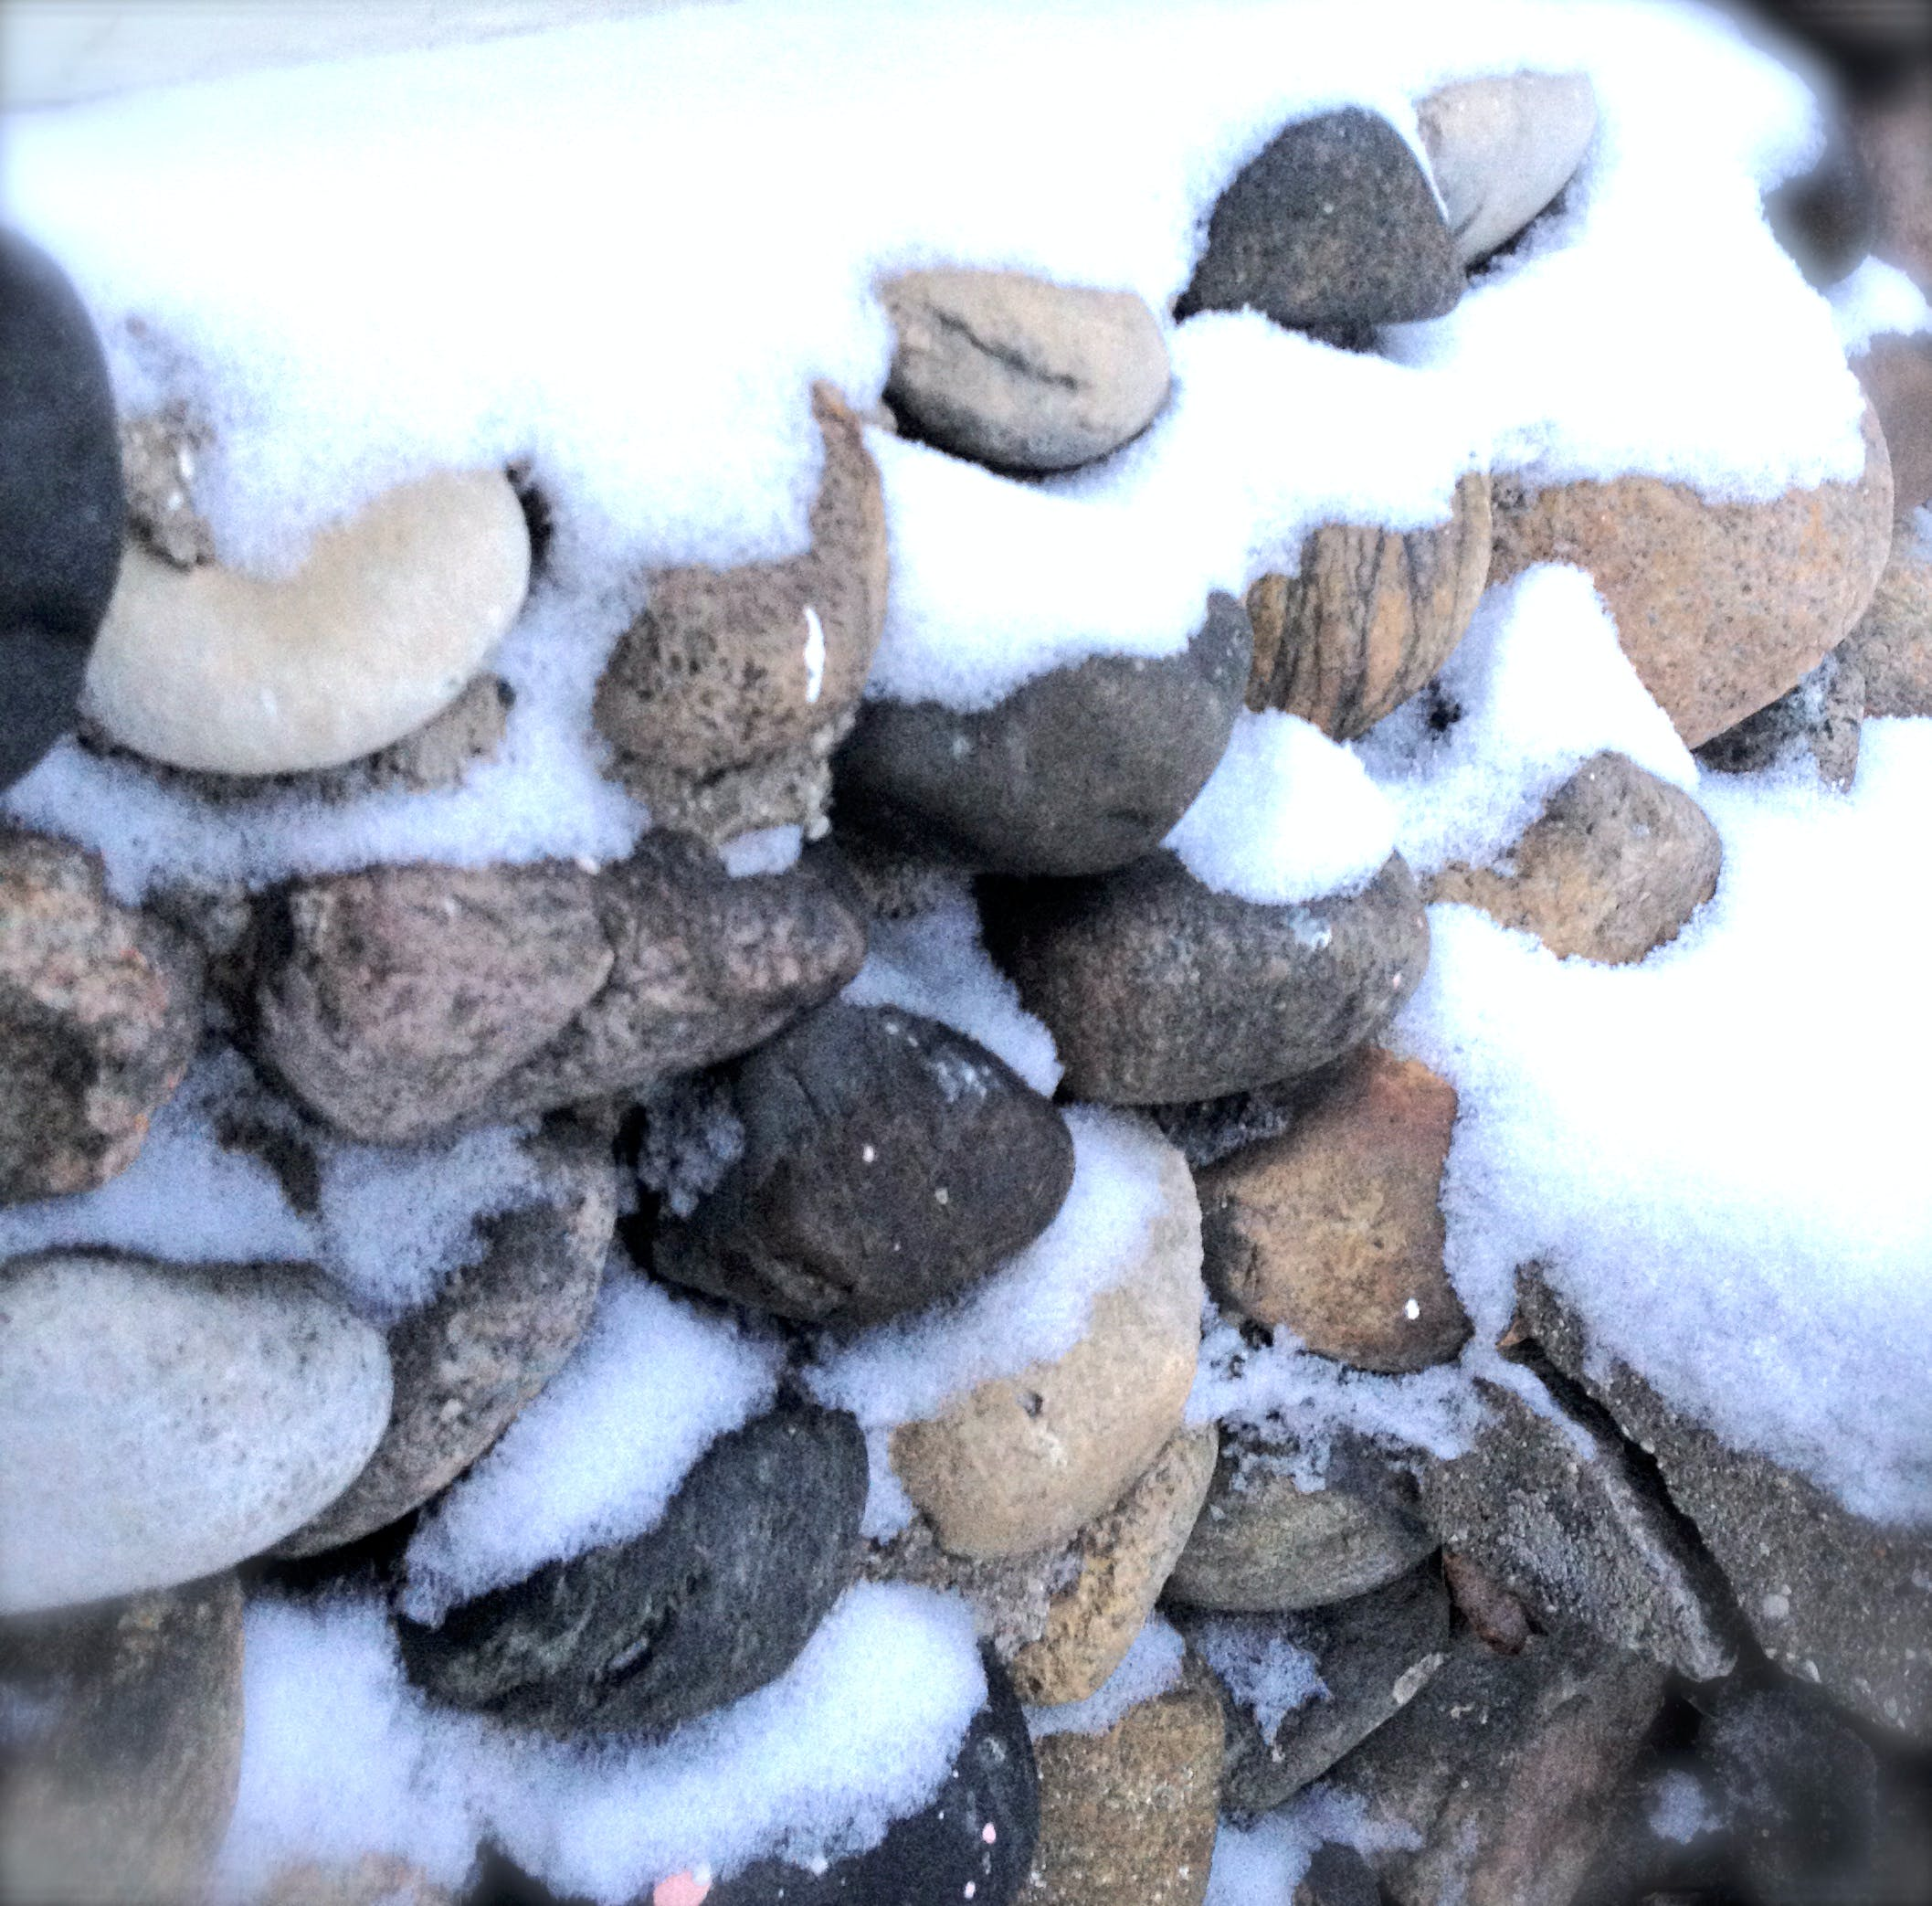 Snowy stones at the B+B